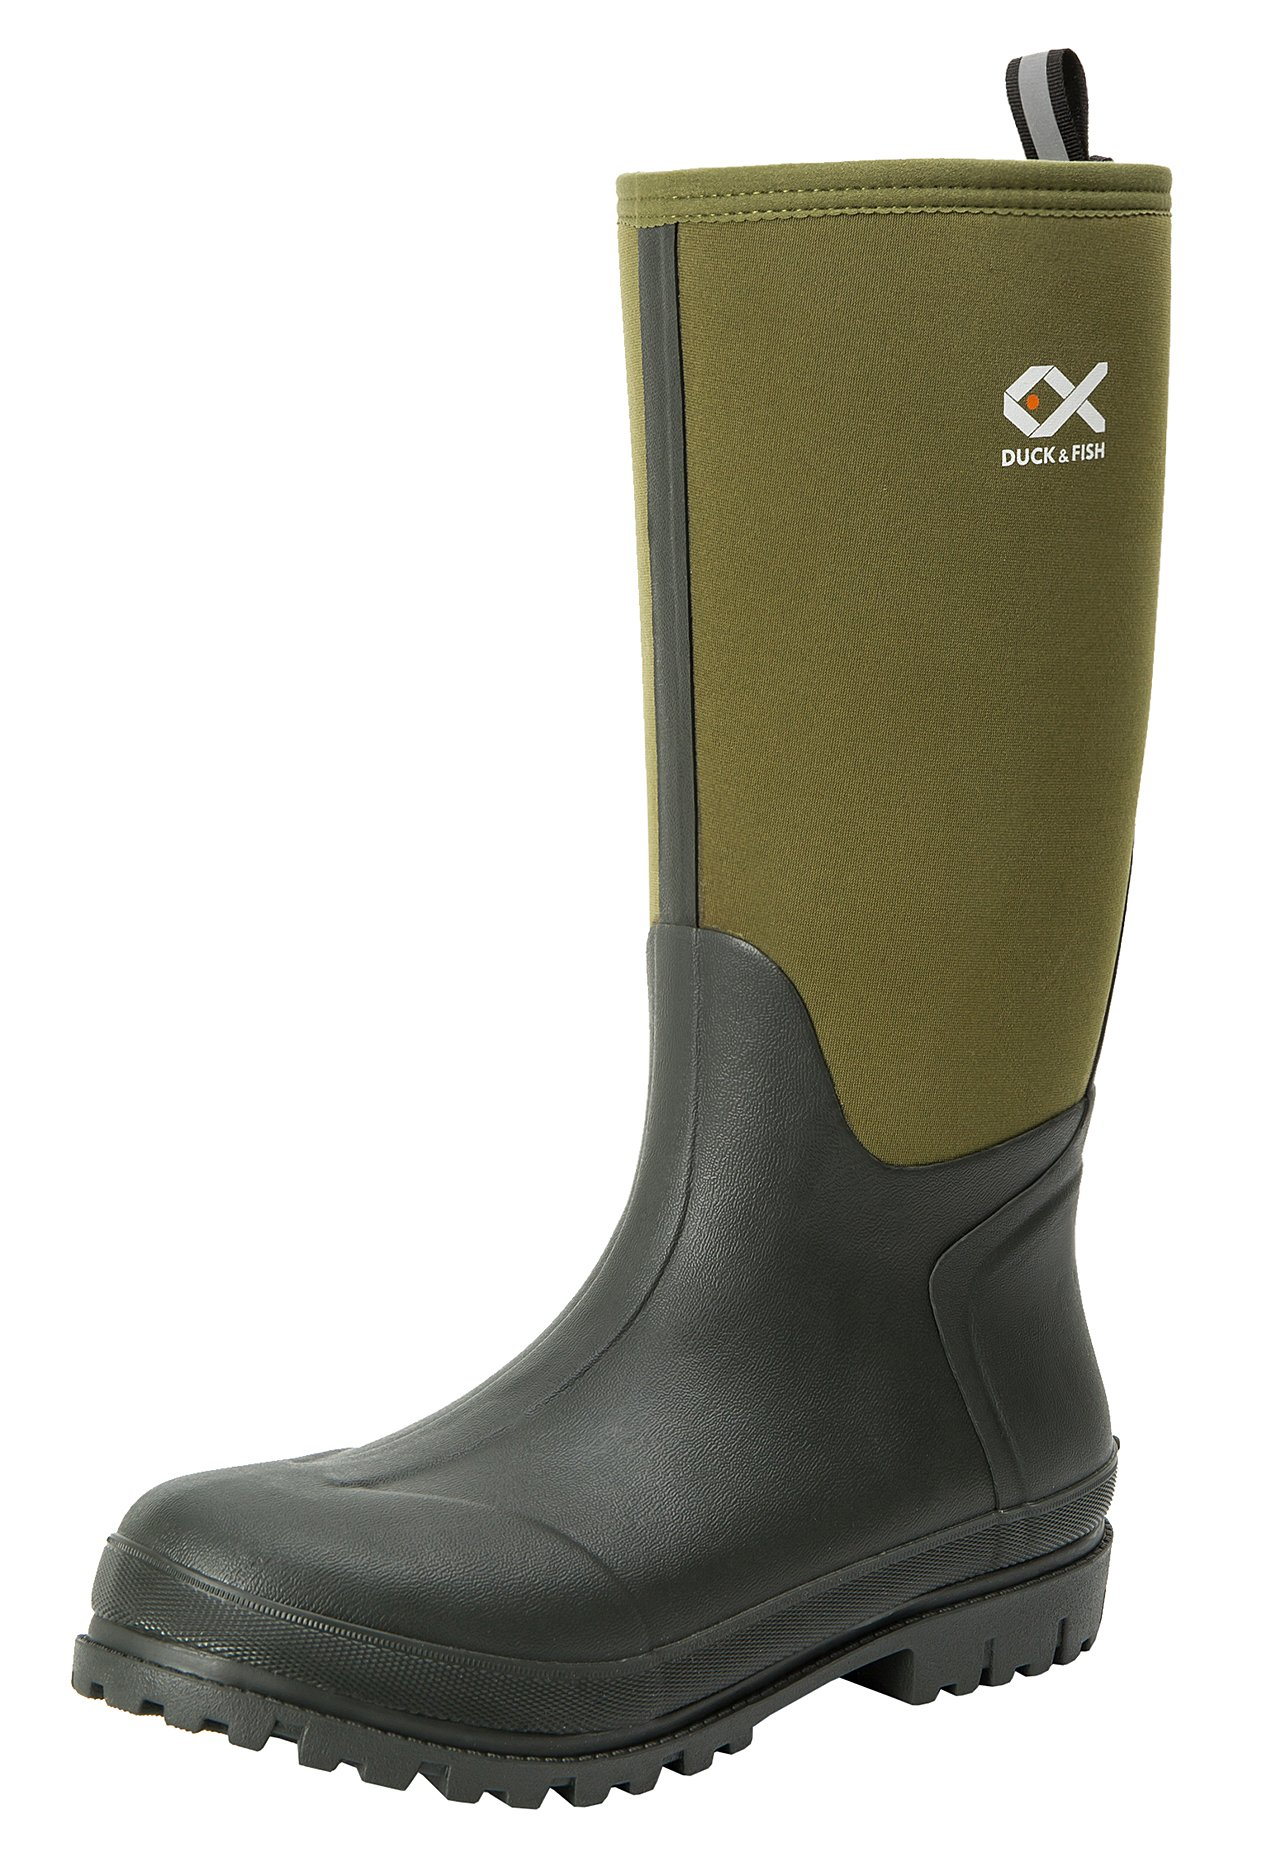 Duck and Fish 16'' Fishing Hunting Neoprene Rubber Molded Outsole Knee Boot (US 7, Green)